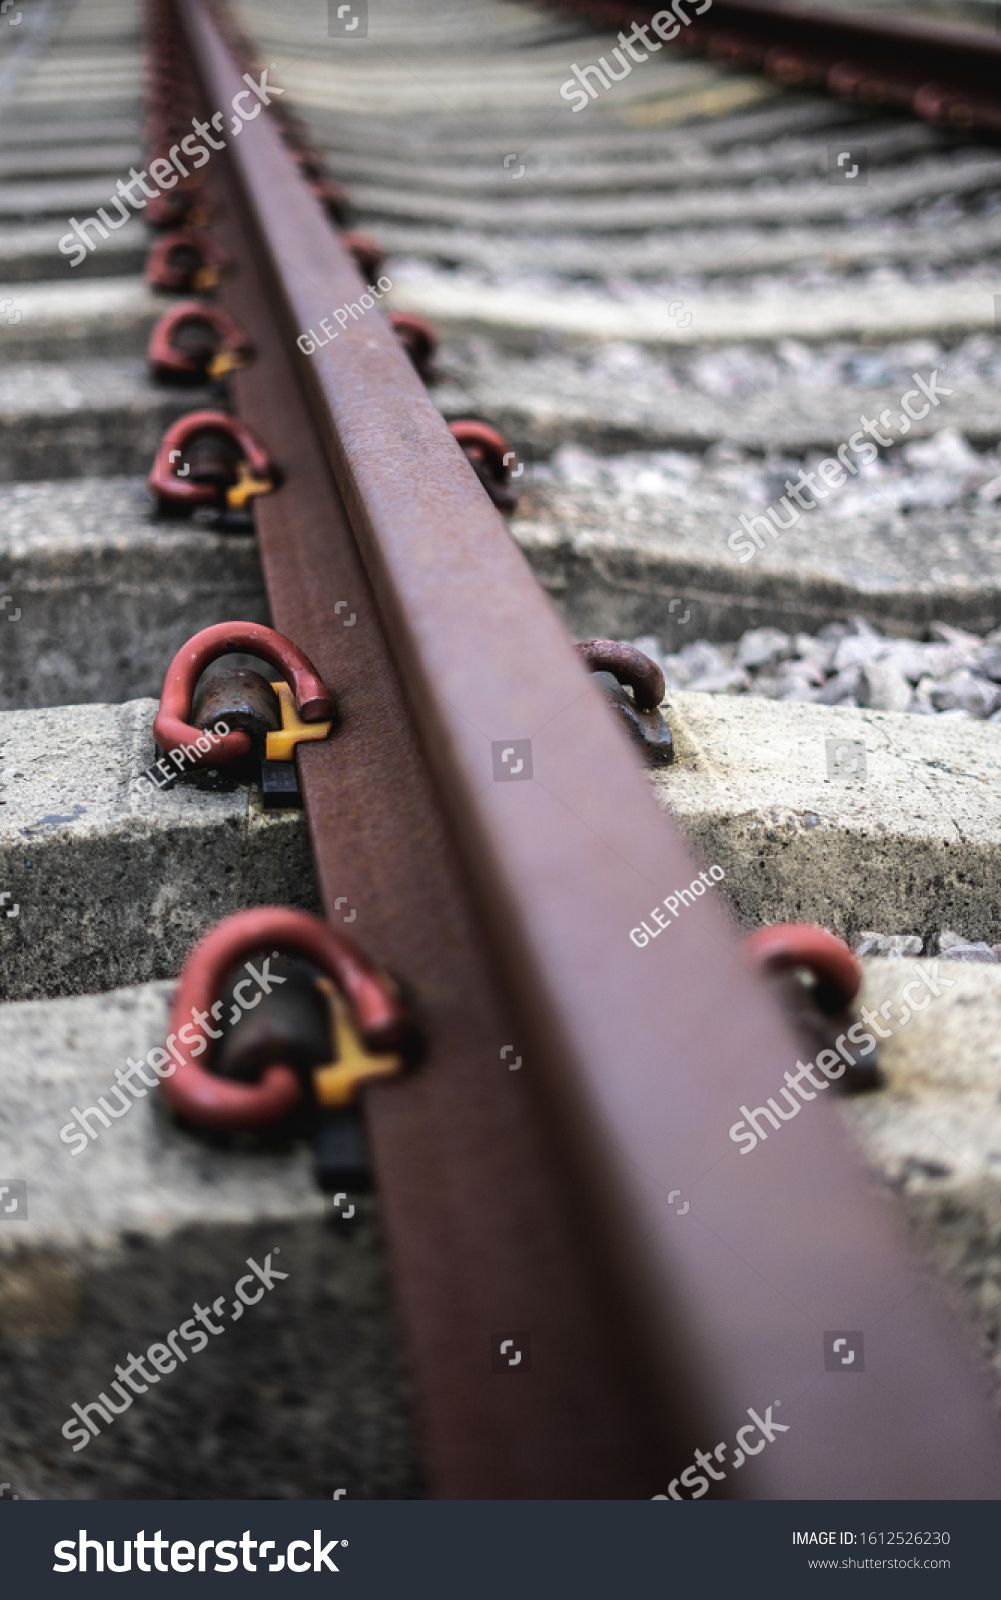 a close up of an iron railway track with the focus on the middle section